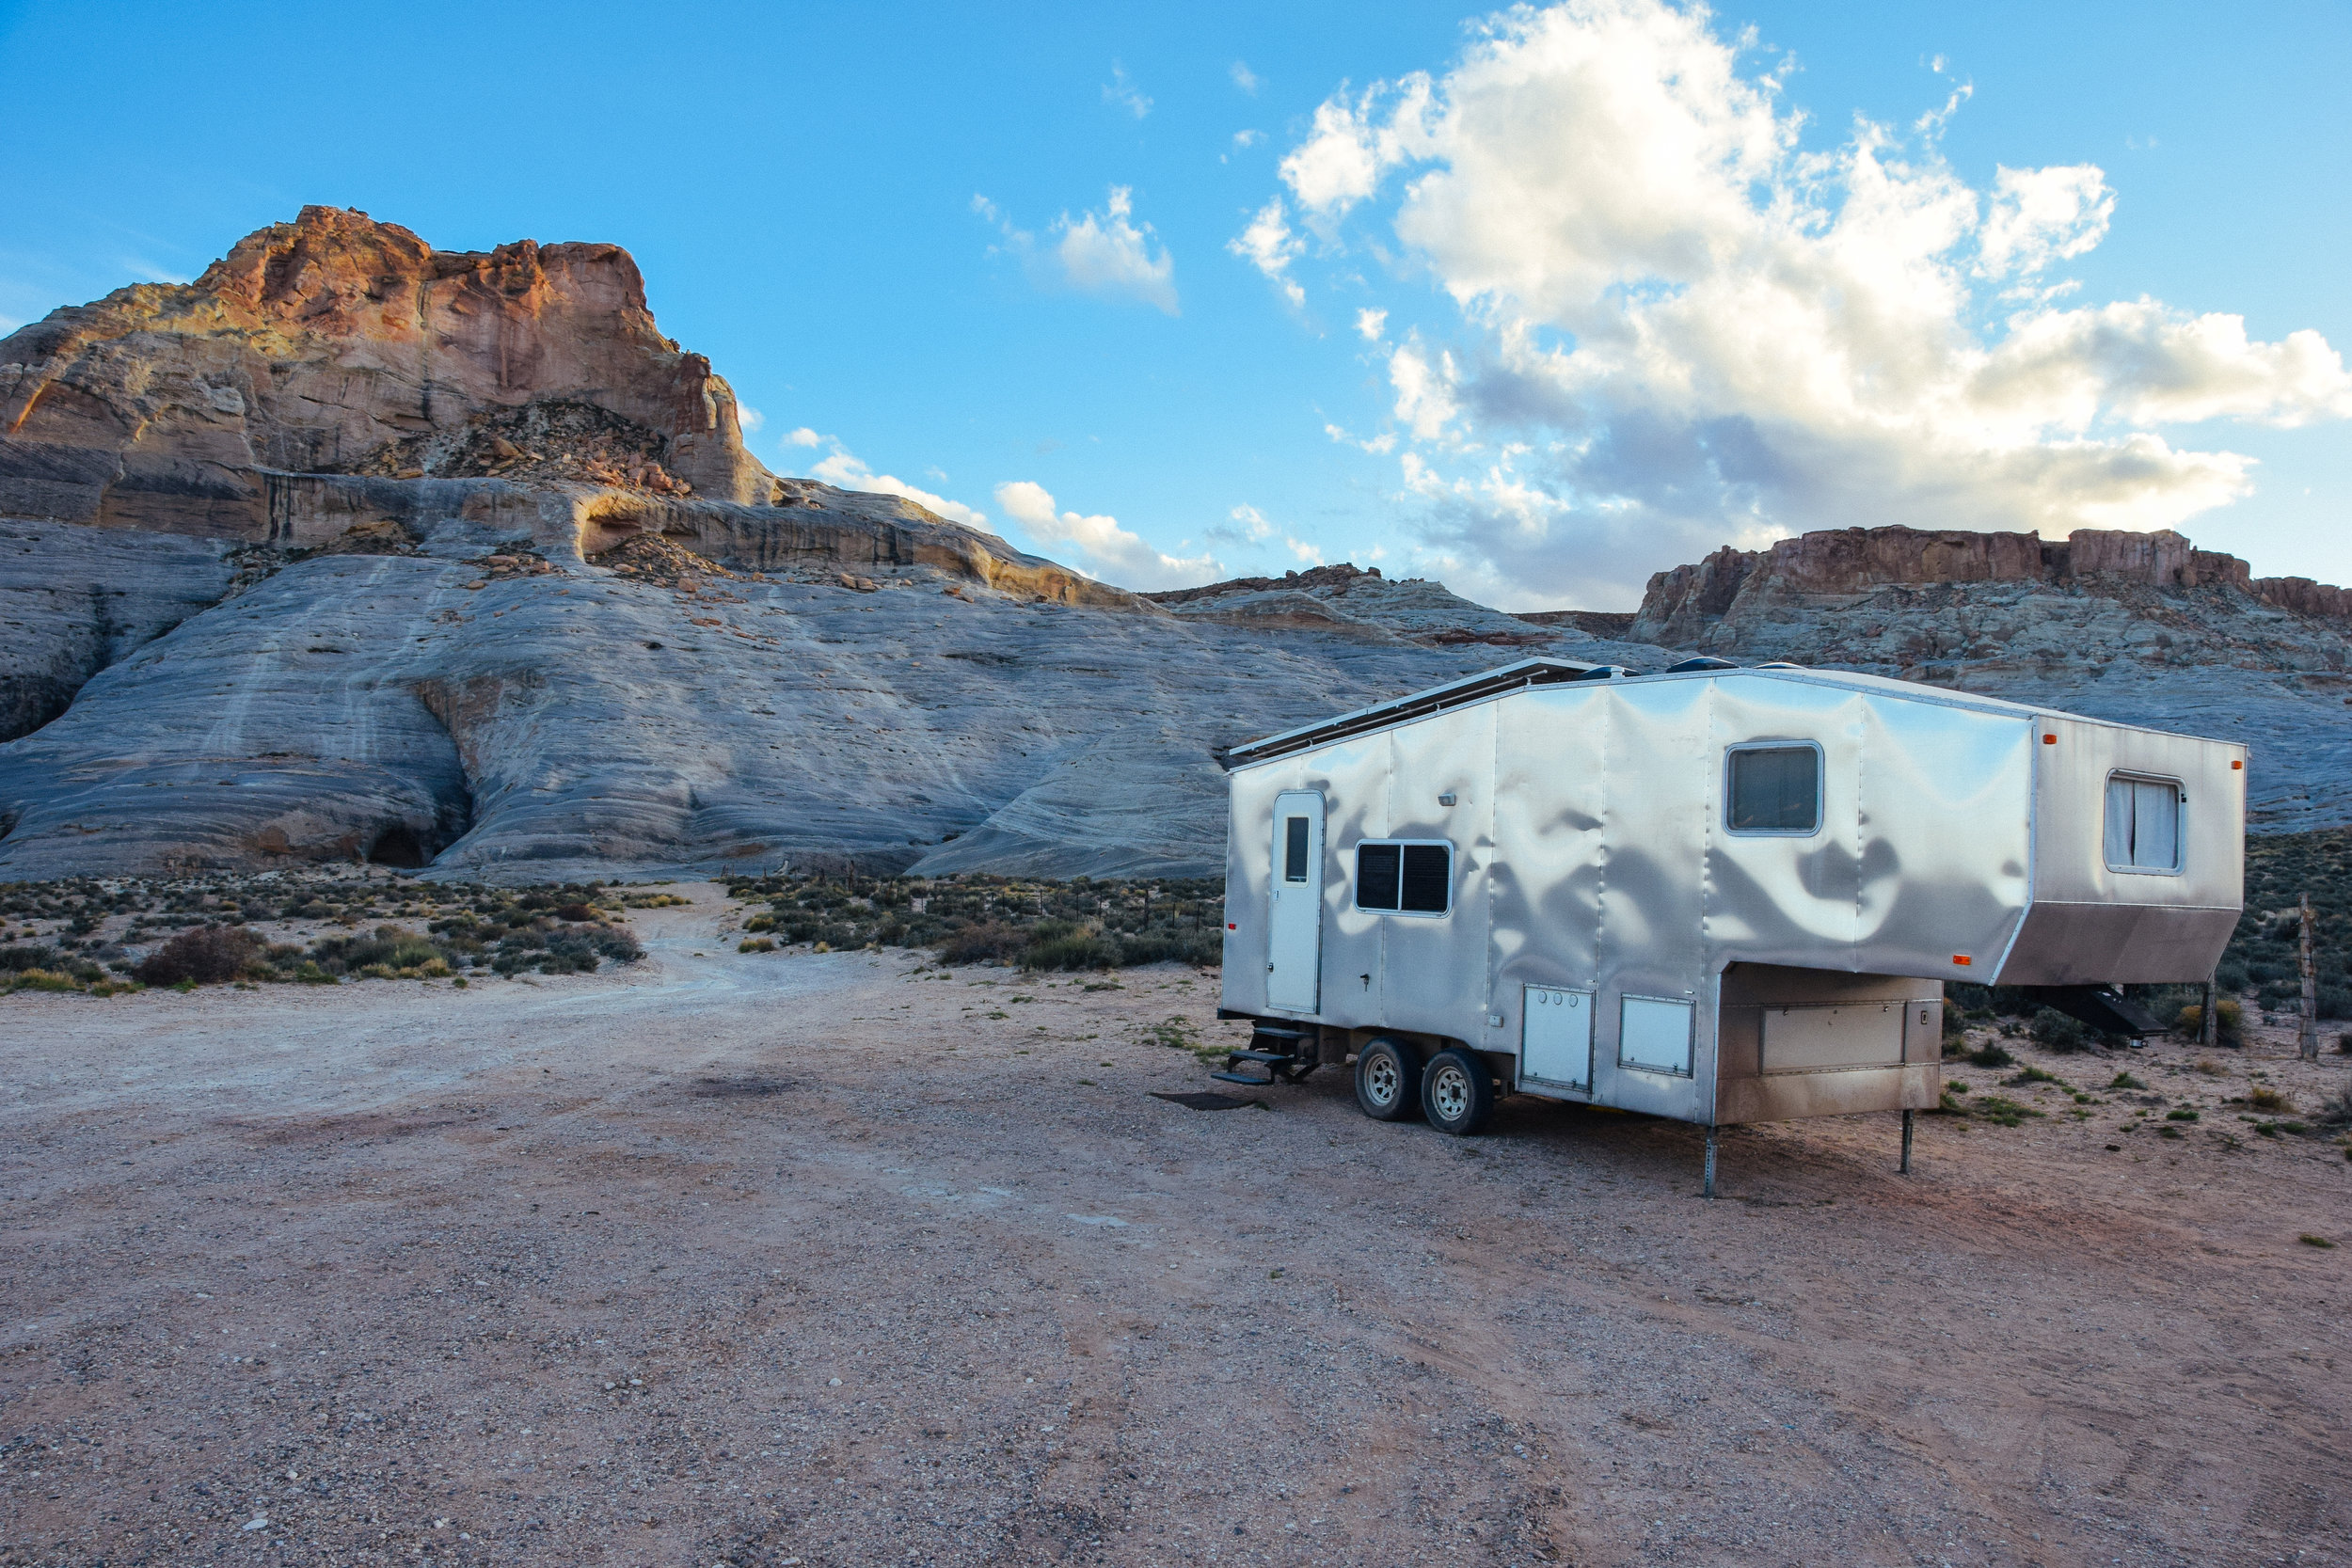 Some boondocking spots are almost too good to be true.